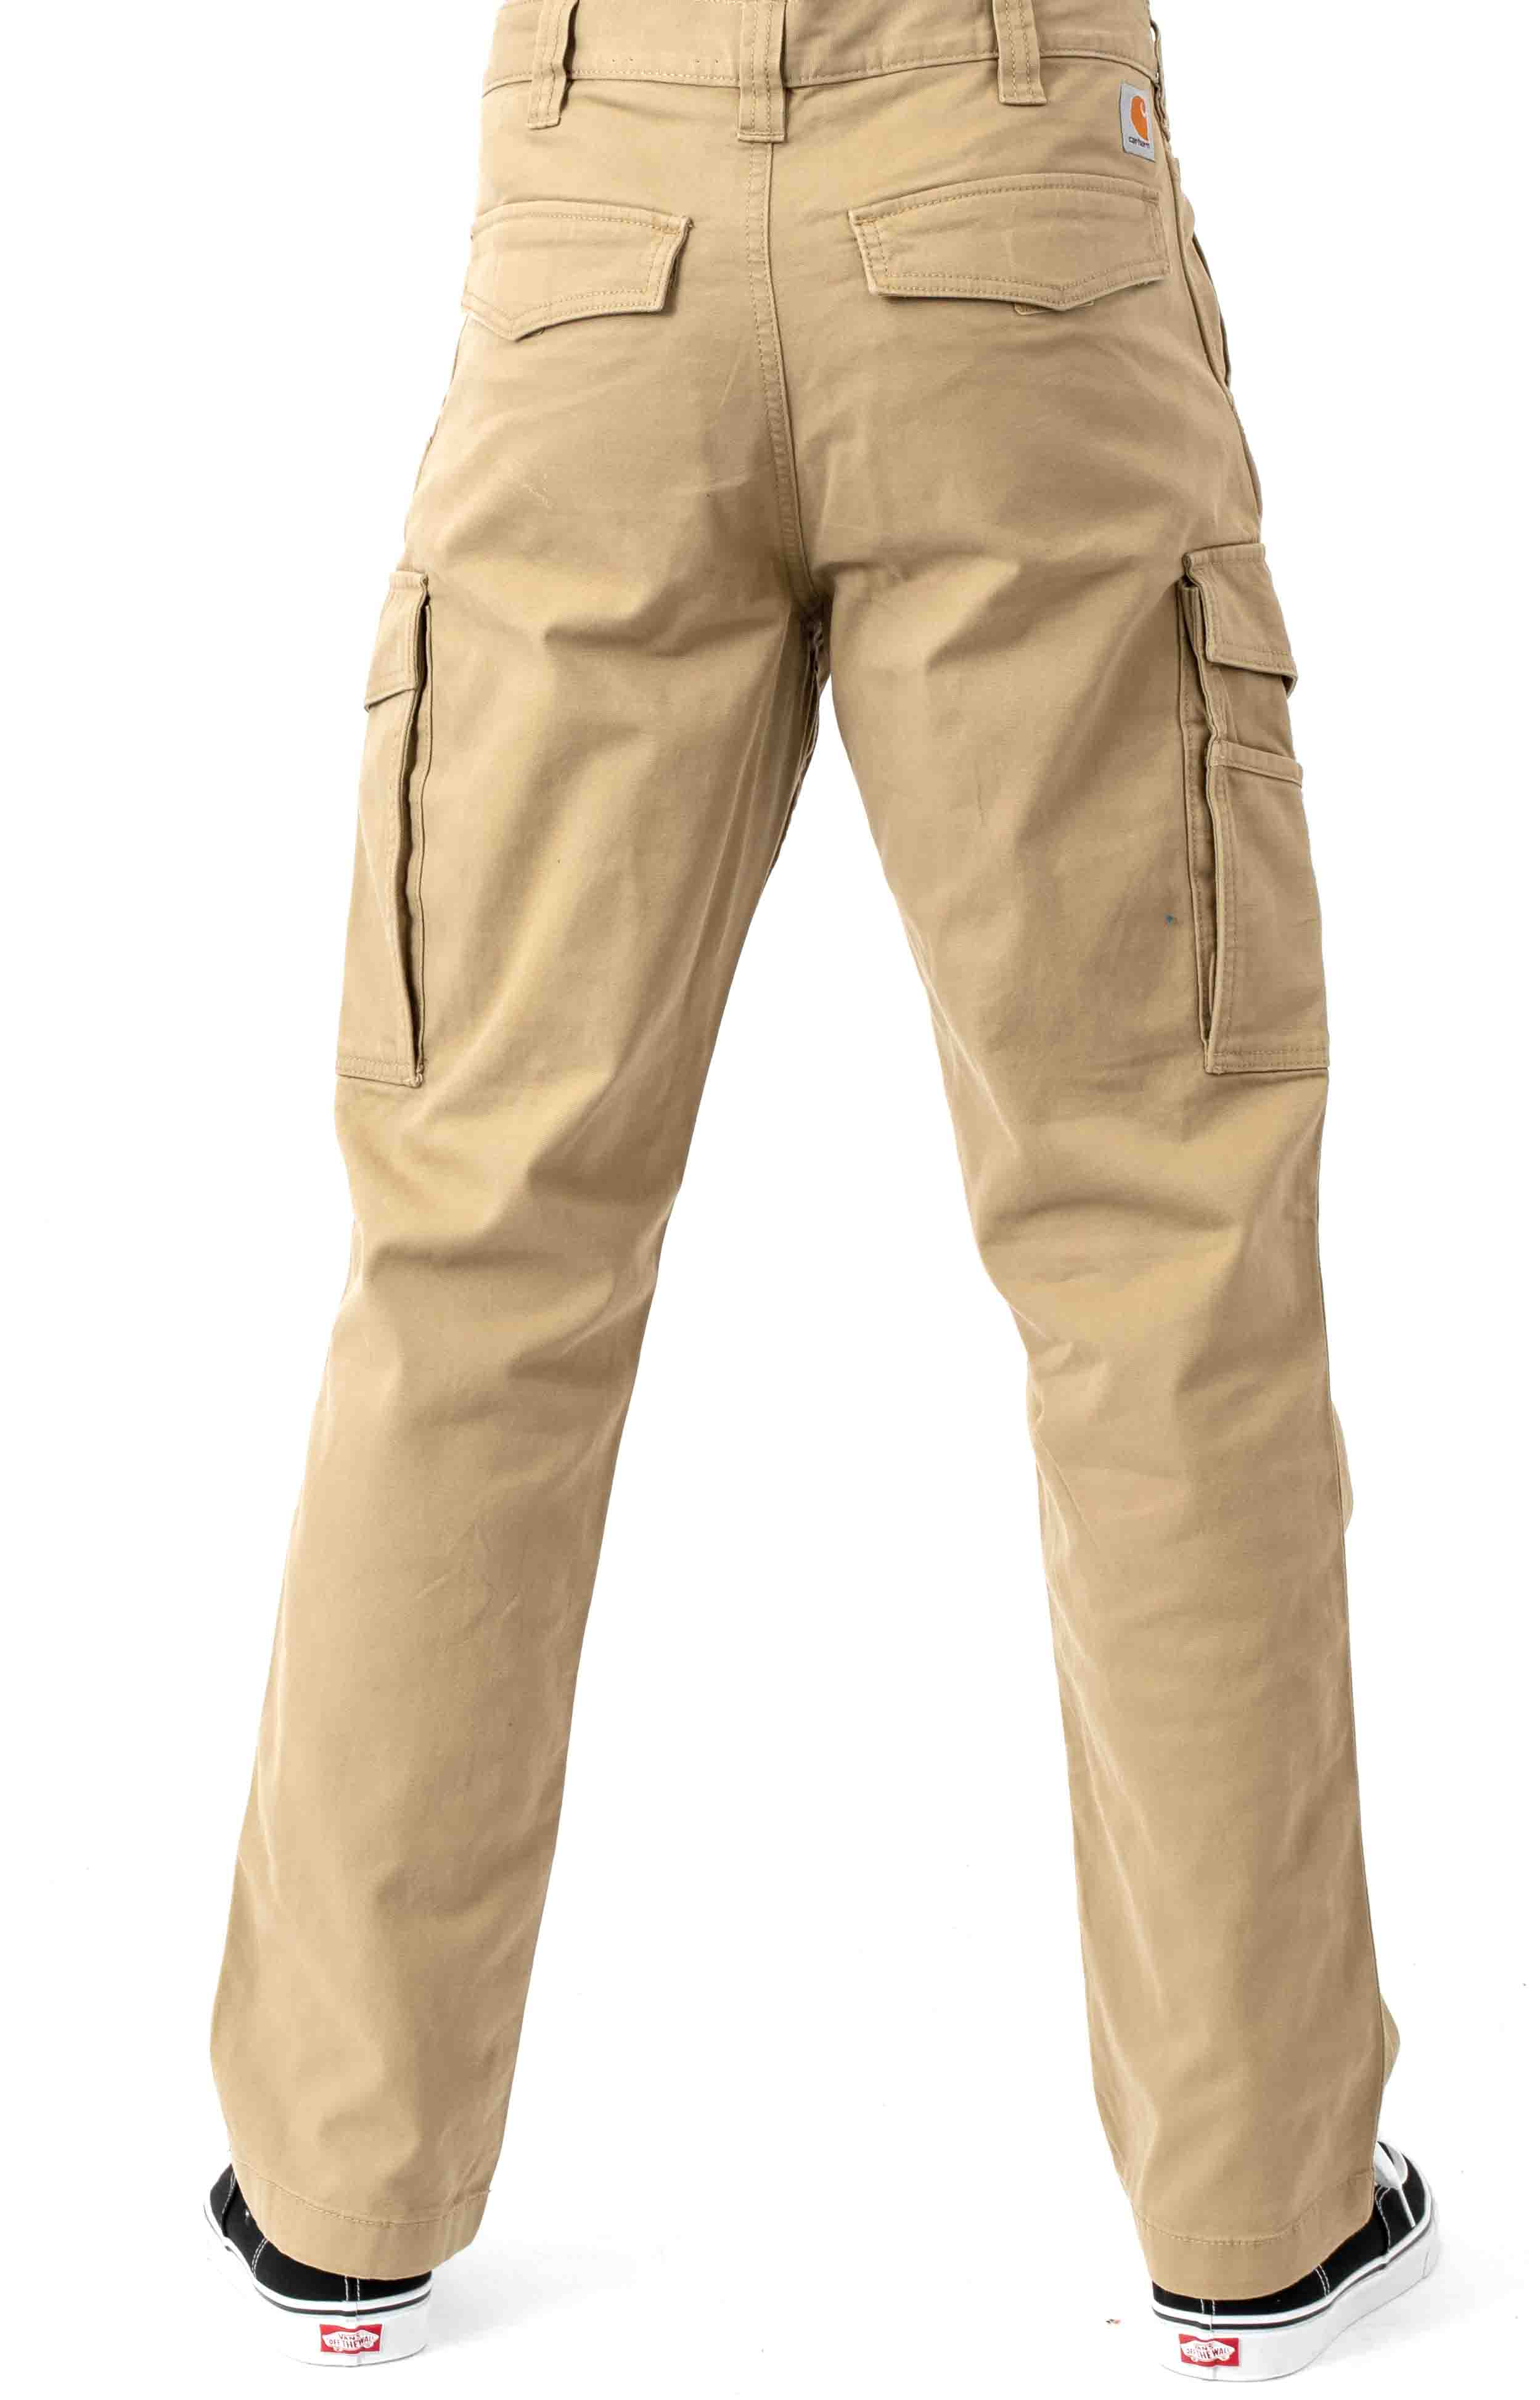 (103574) Rugged Flex Rigby Cargo Pant - Dark Khaki 3